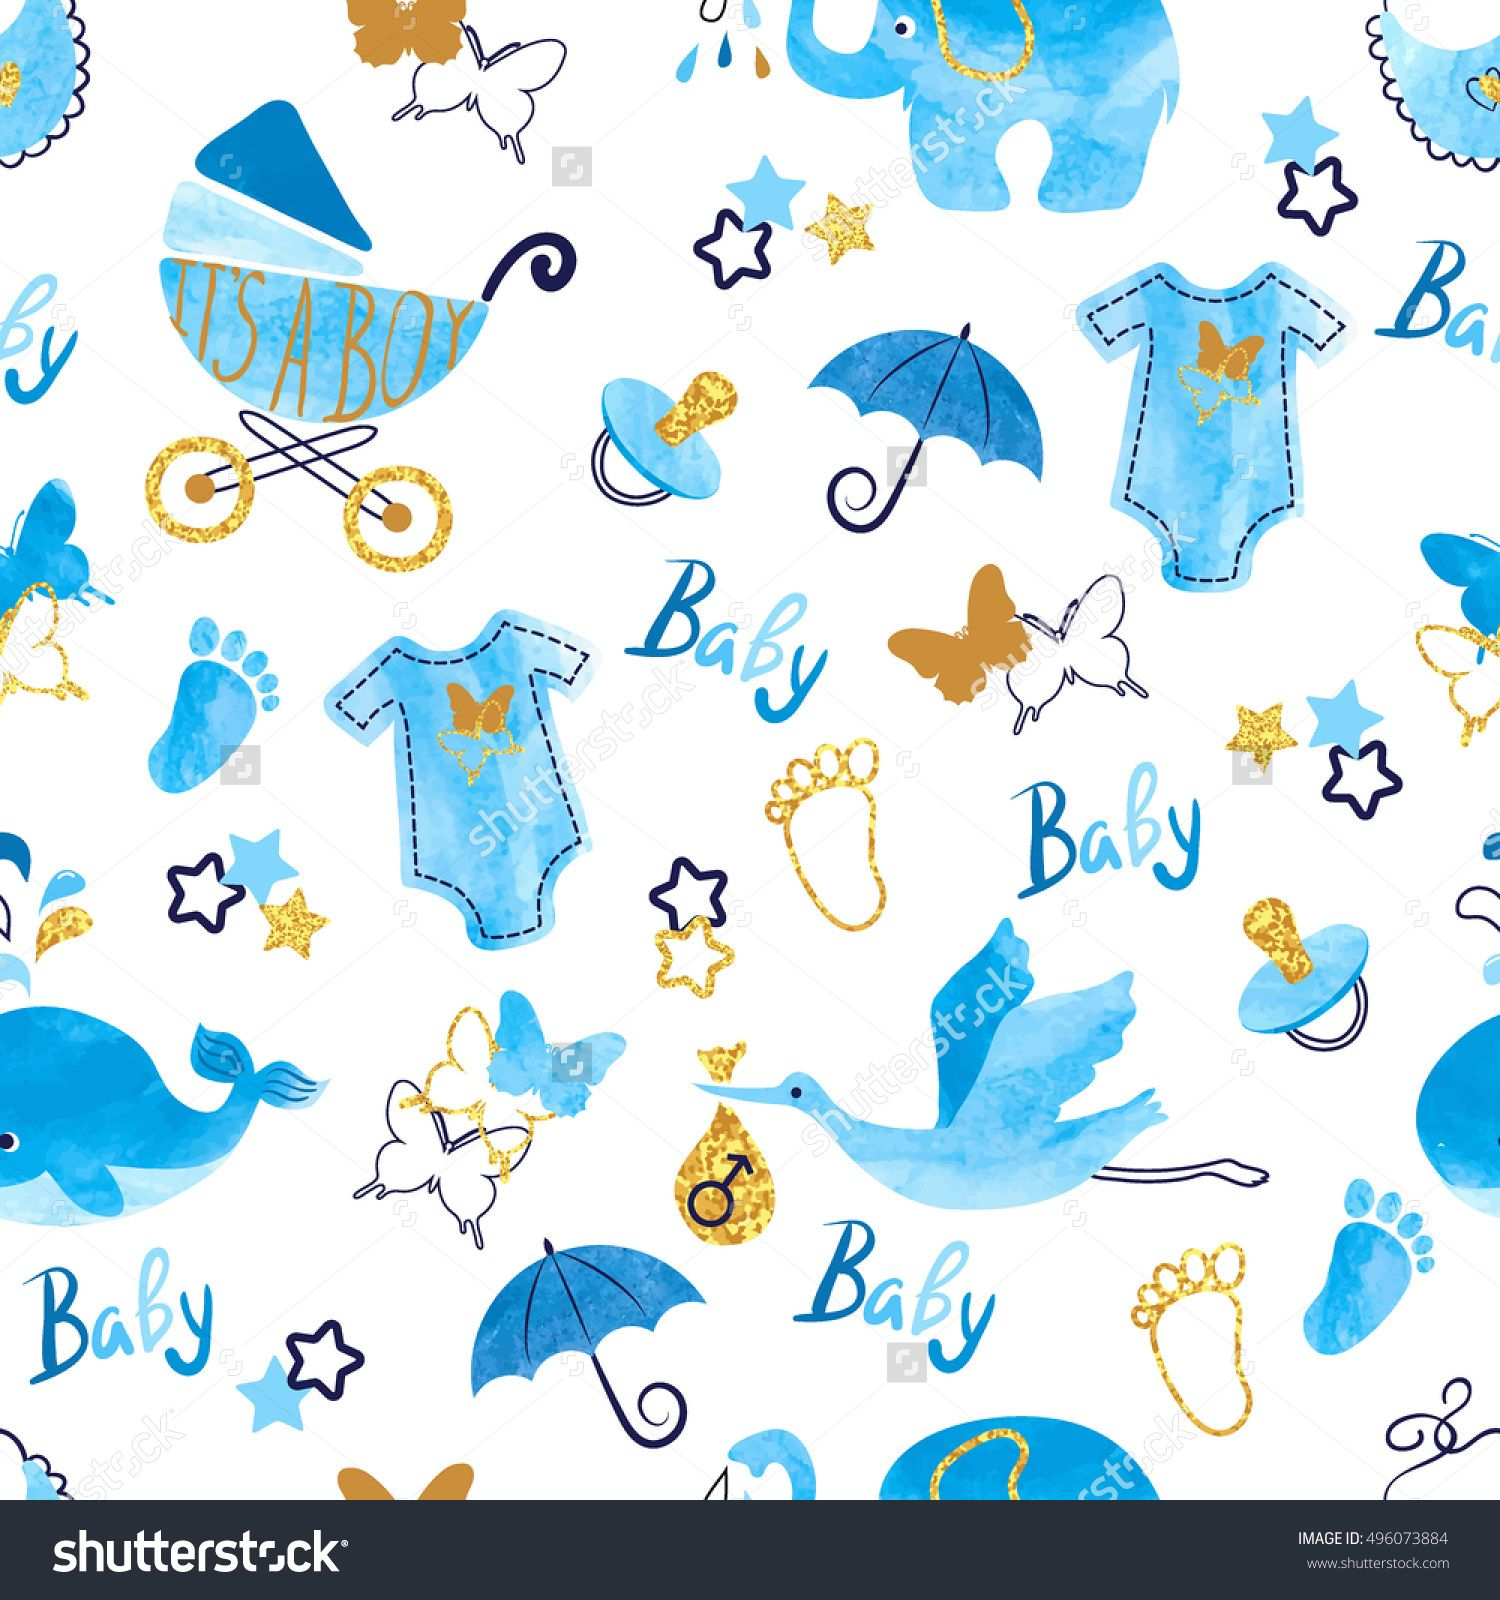 Baby shower boy seamless pattern Vector watercolor kids